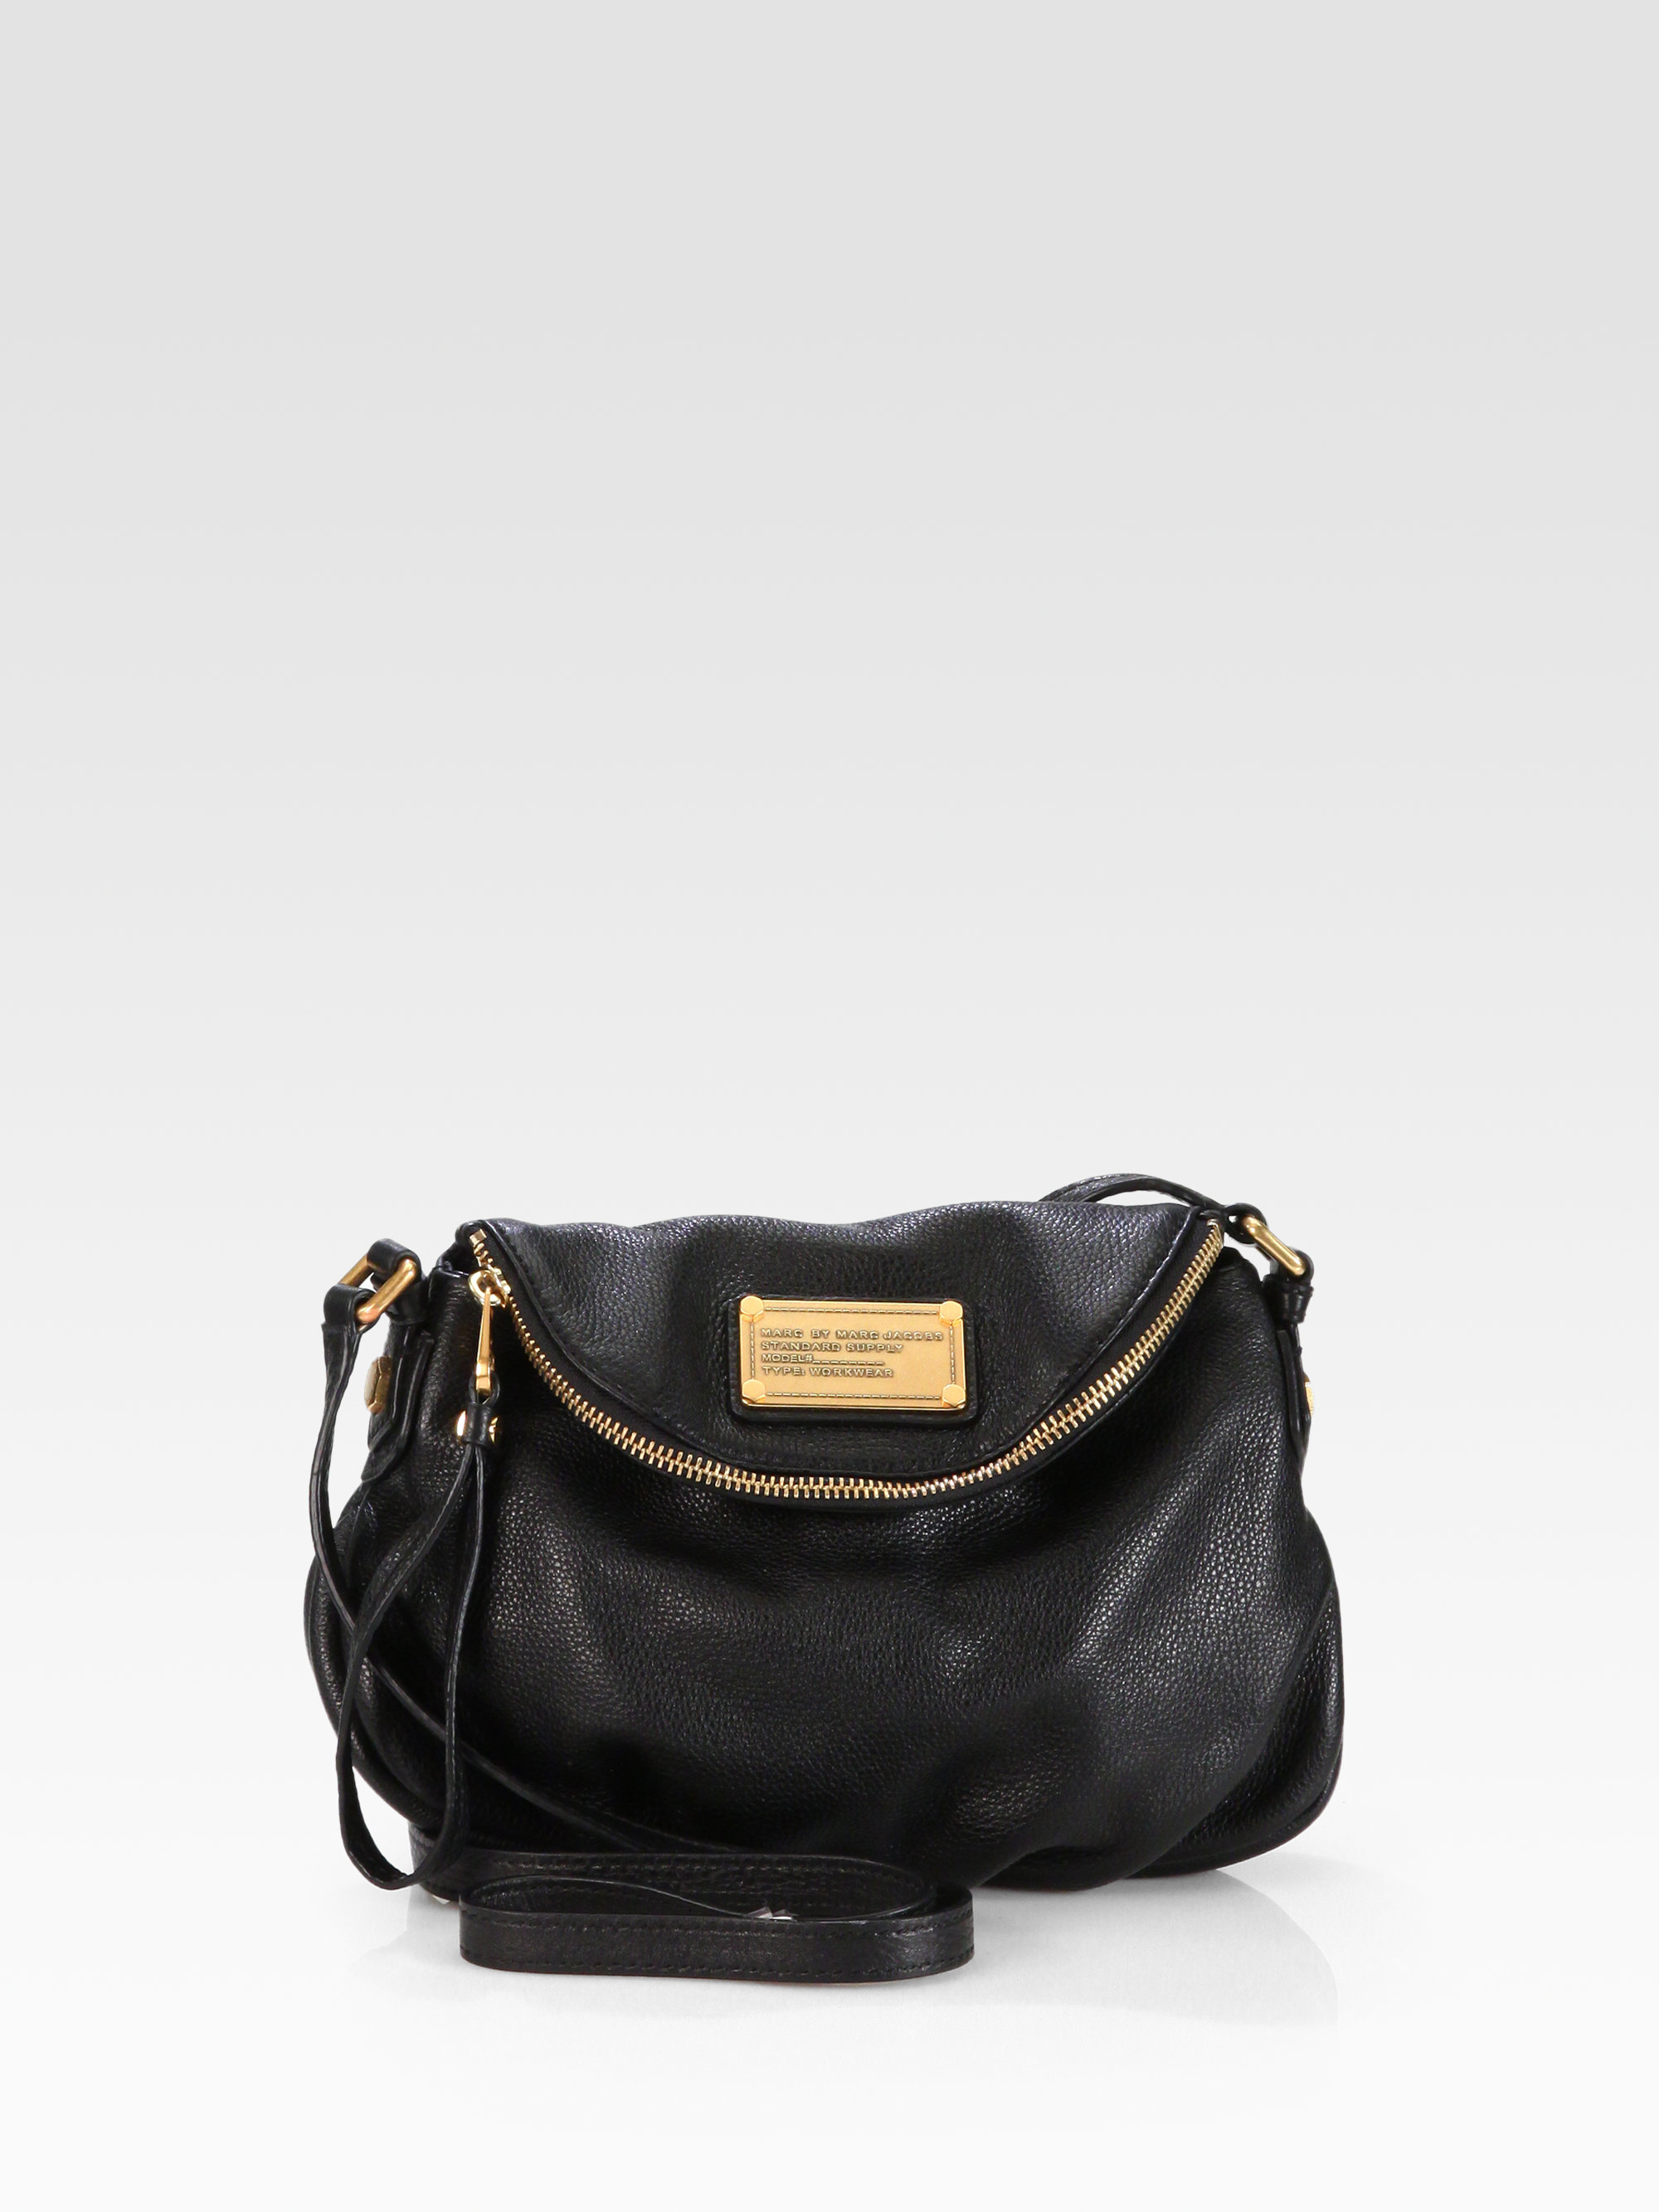 7610f1ce50d96 Gallery. Previously sold at  Saks Fifth Avenue · Women s Marc Jacobs Natasha  ...